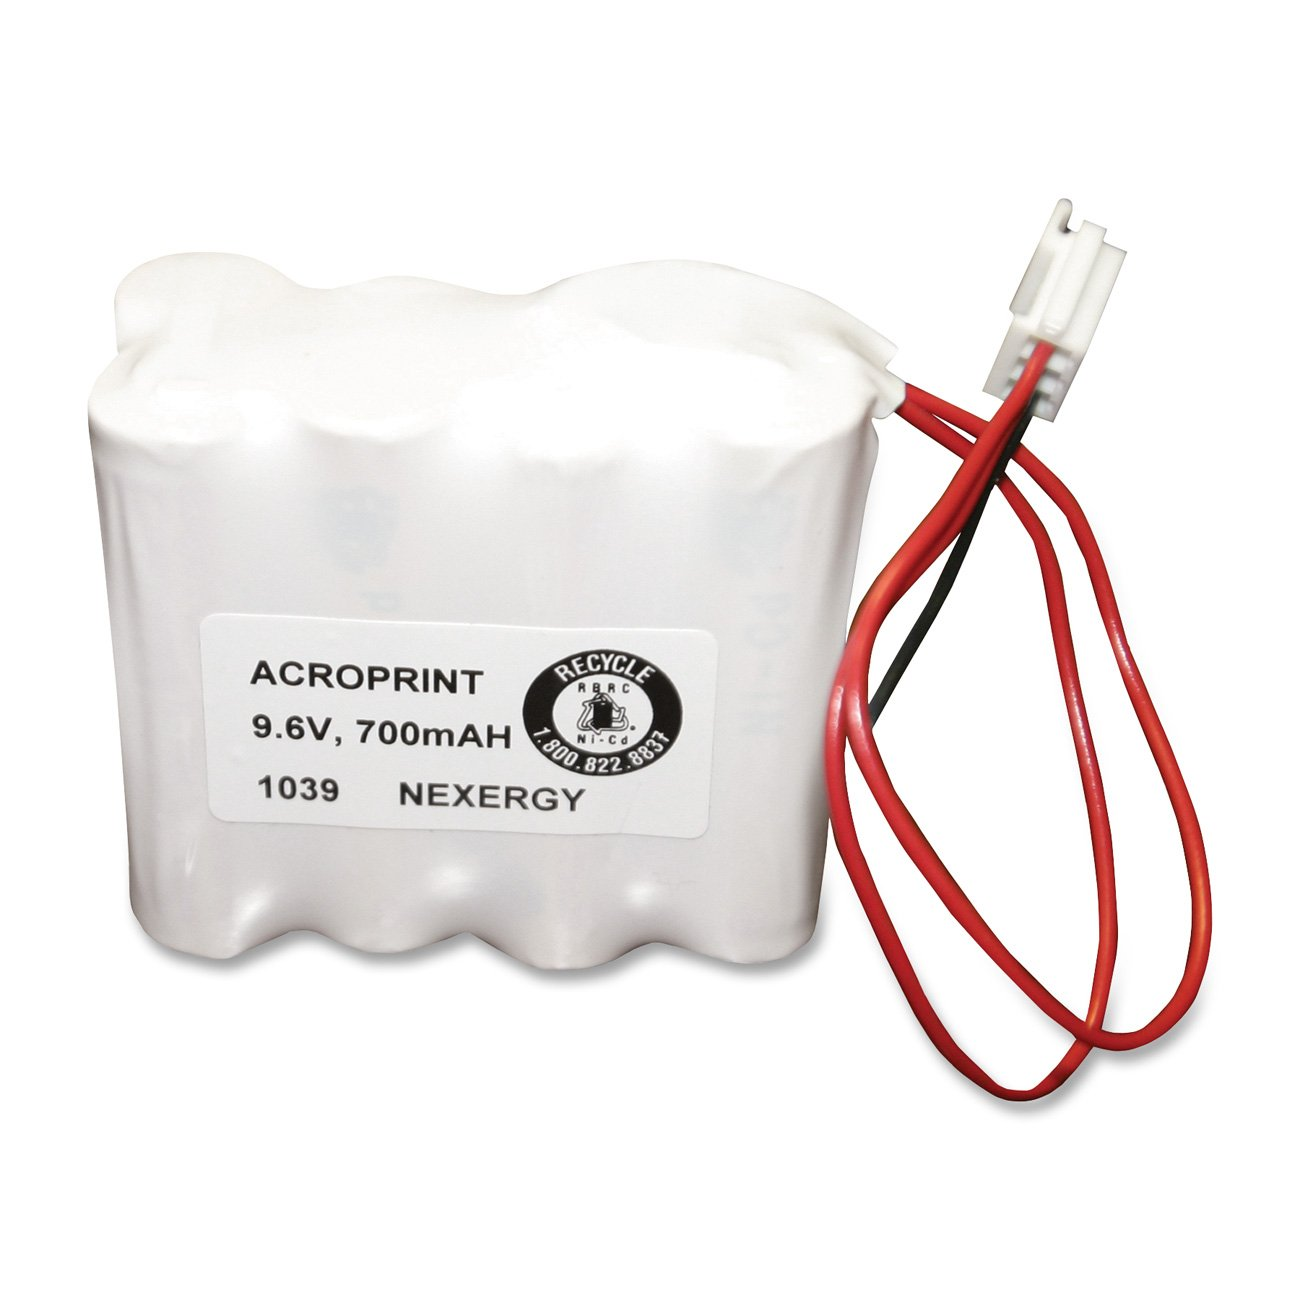 Acroprint 58-0108-000 Optional Back-Up Battery for Model ES900 Electronic Payroll Time Recorder 580108000